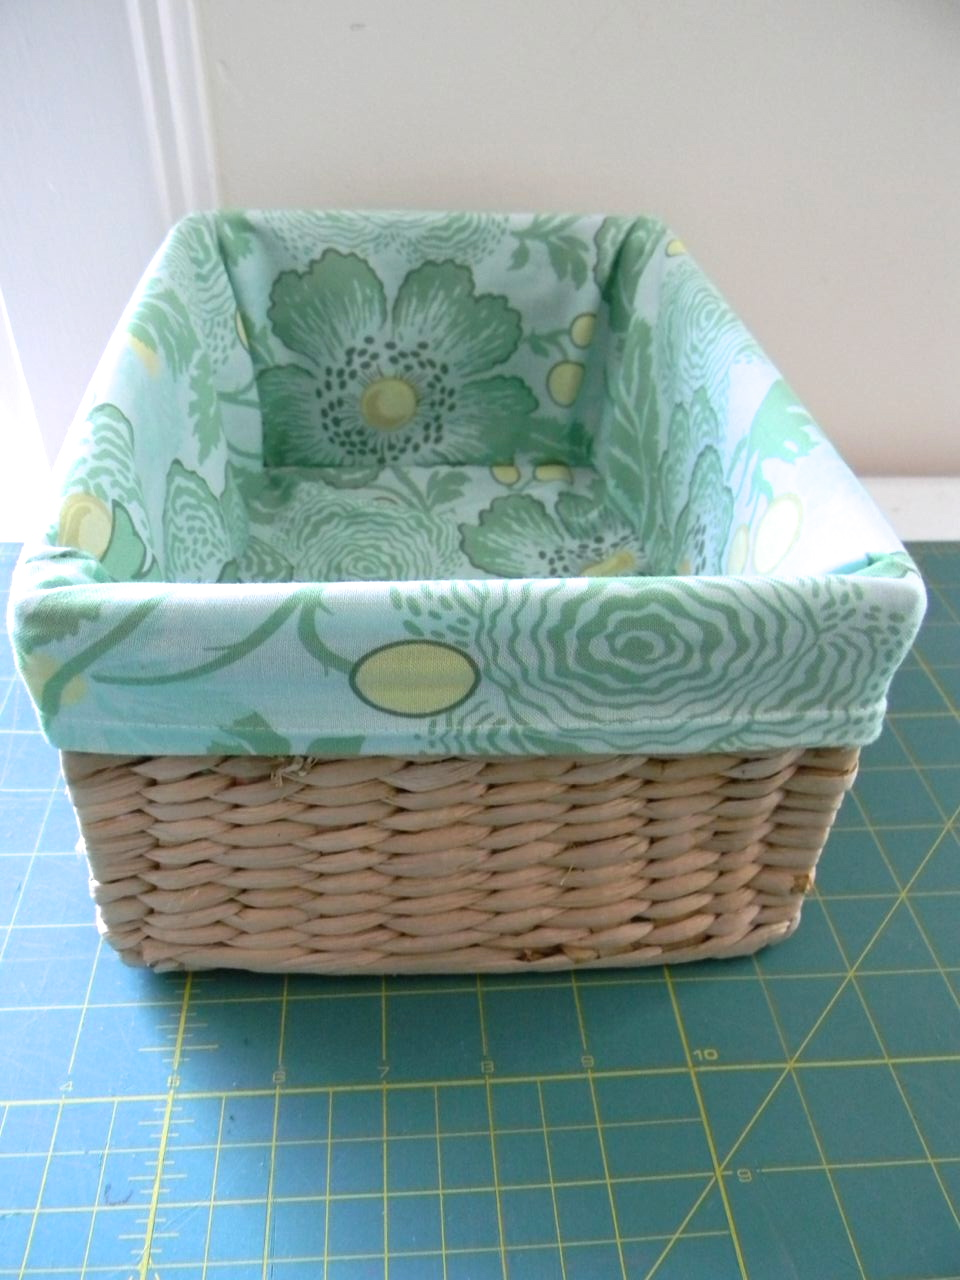 How to :: line baskets with fabric - A HAPPY STITCH